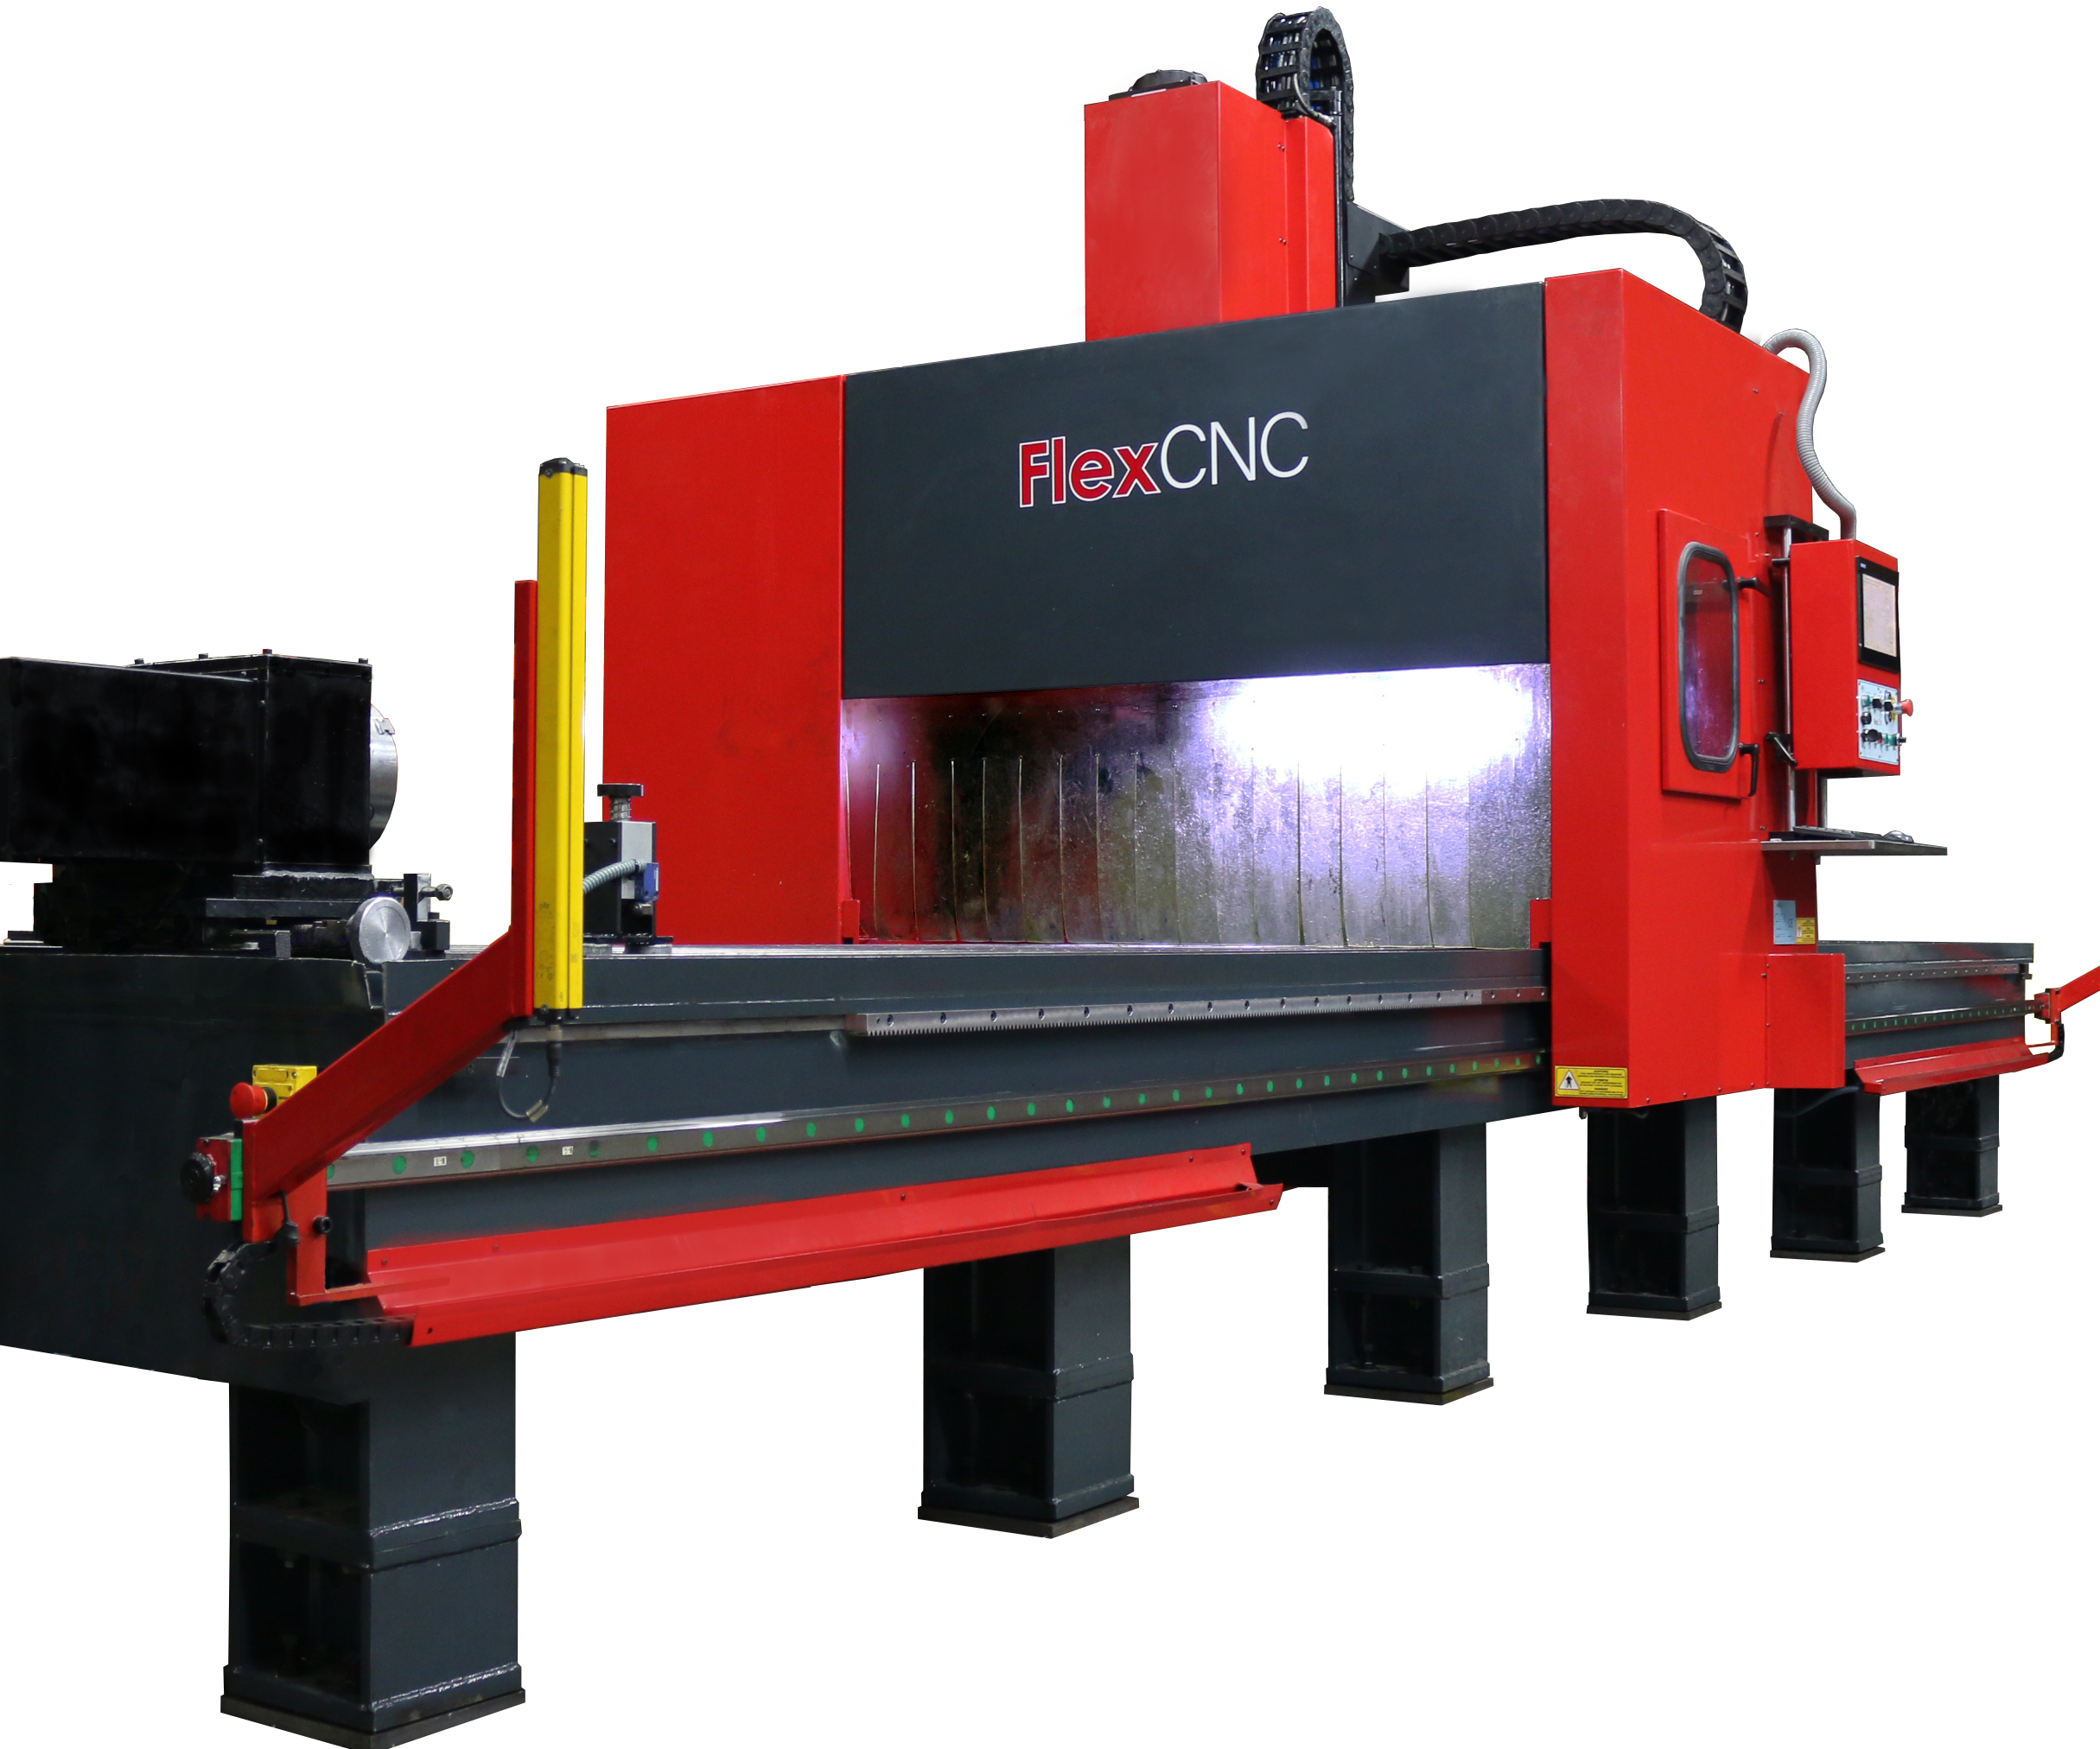 FlexCNC's G-series machining center